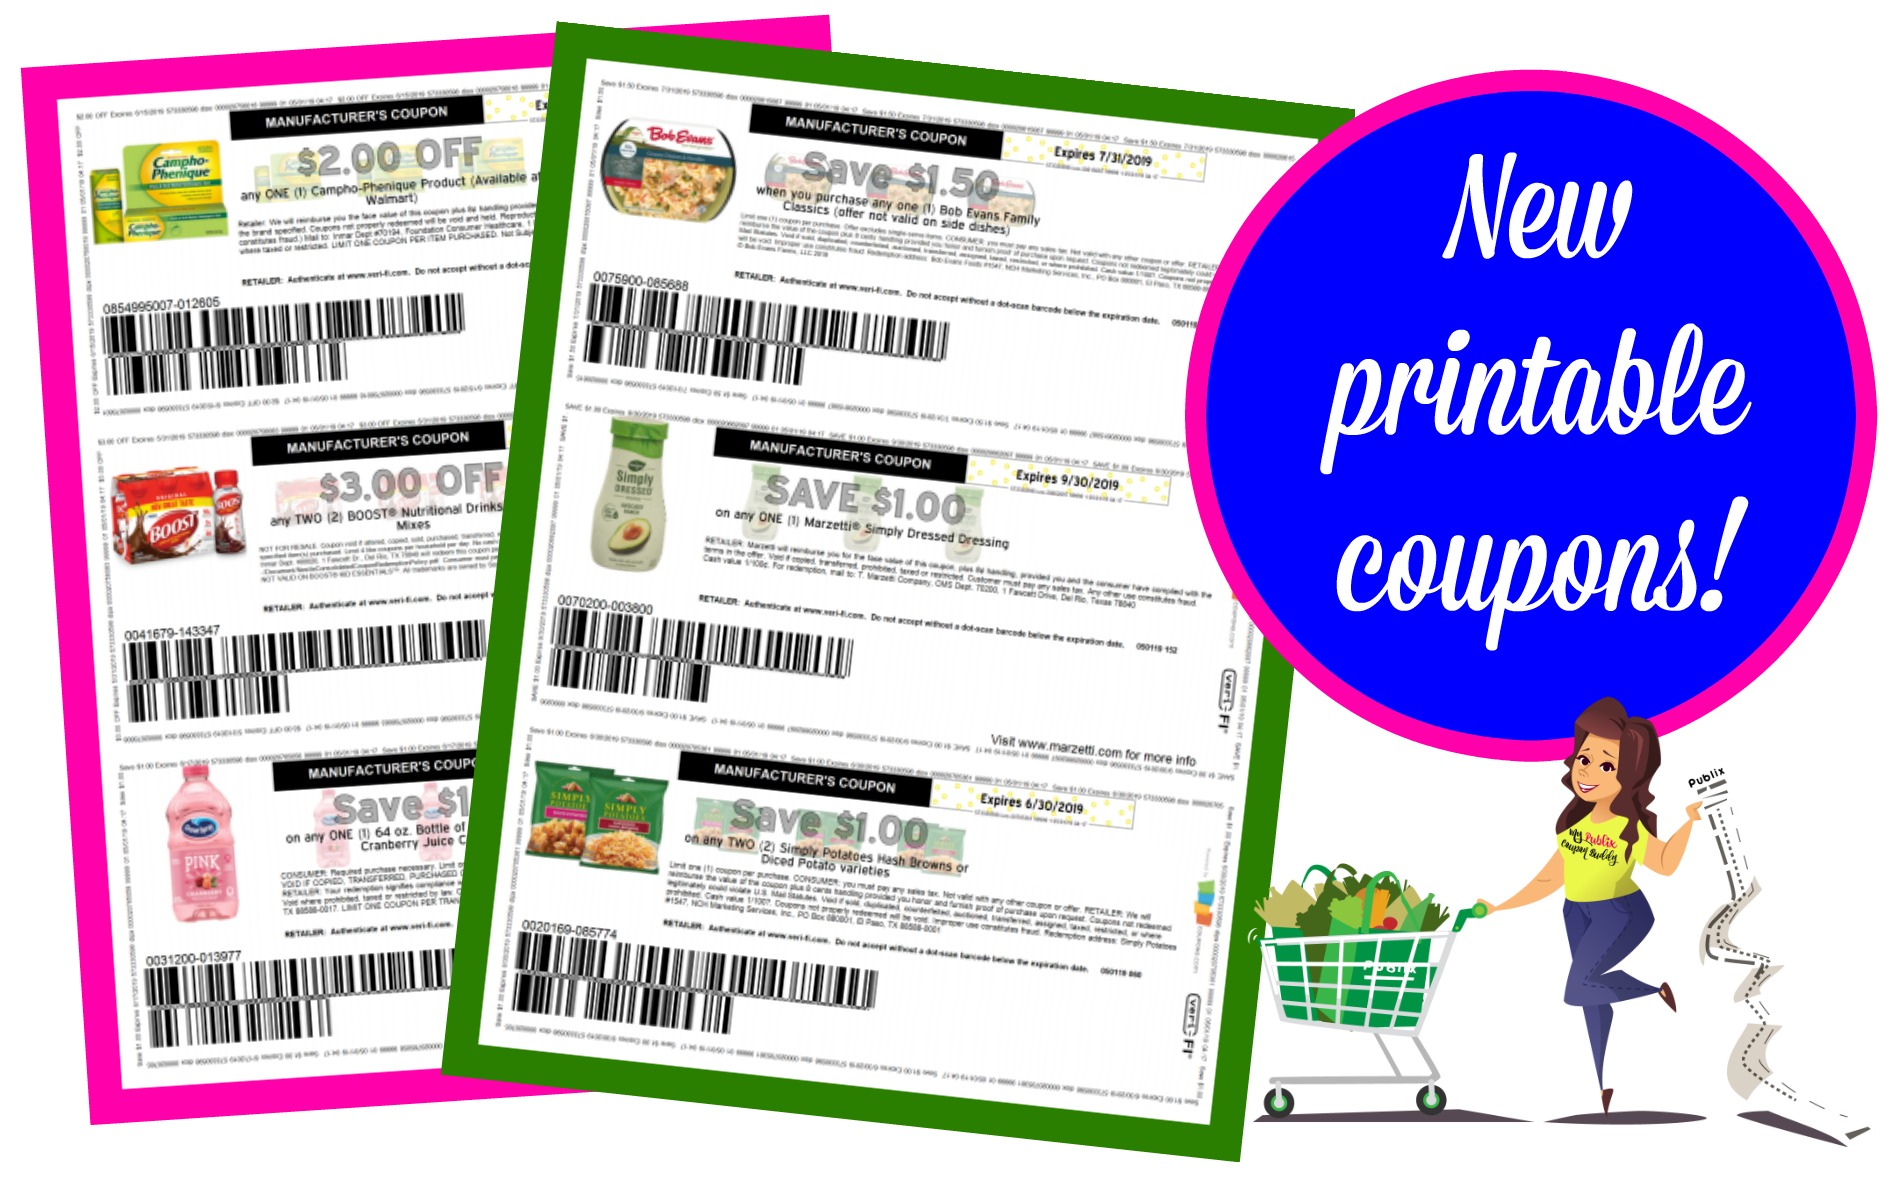 image about Boost Printable Coupons identified as Fresh new printable coupon codes! My Publix Coupon Close friend